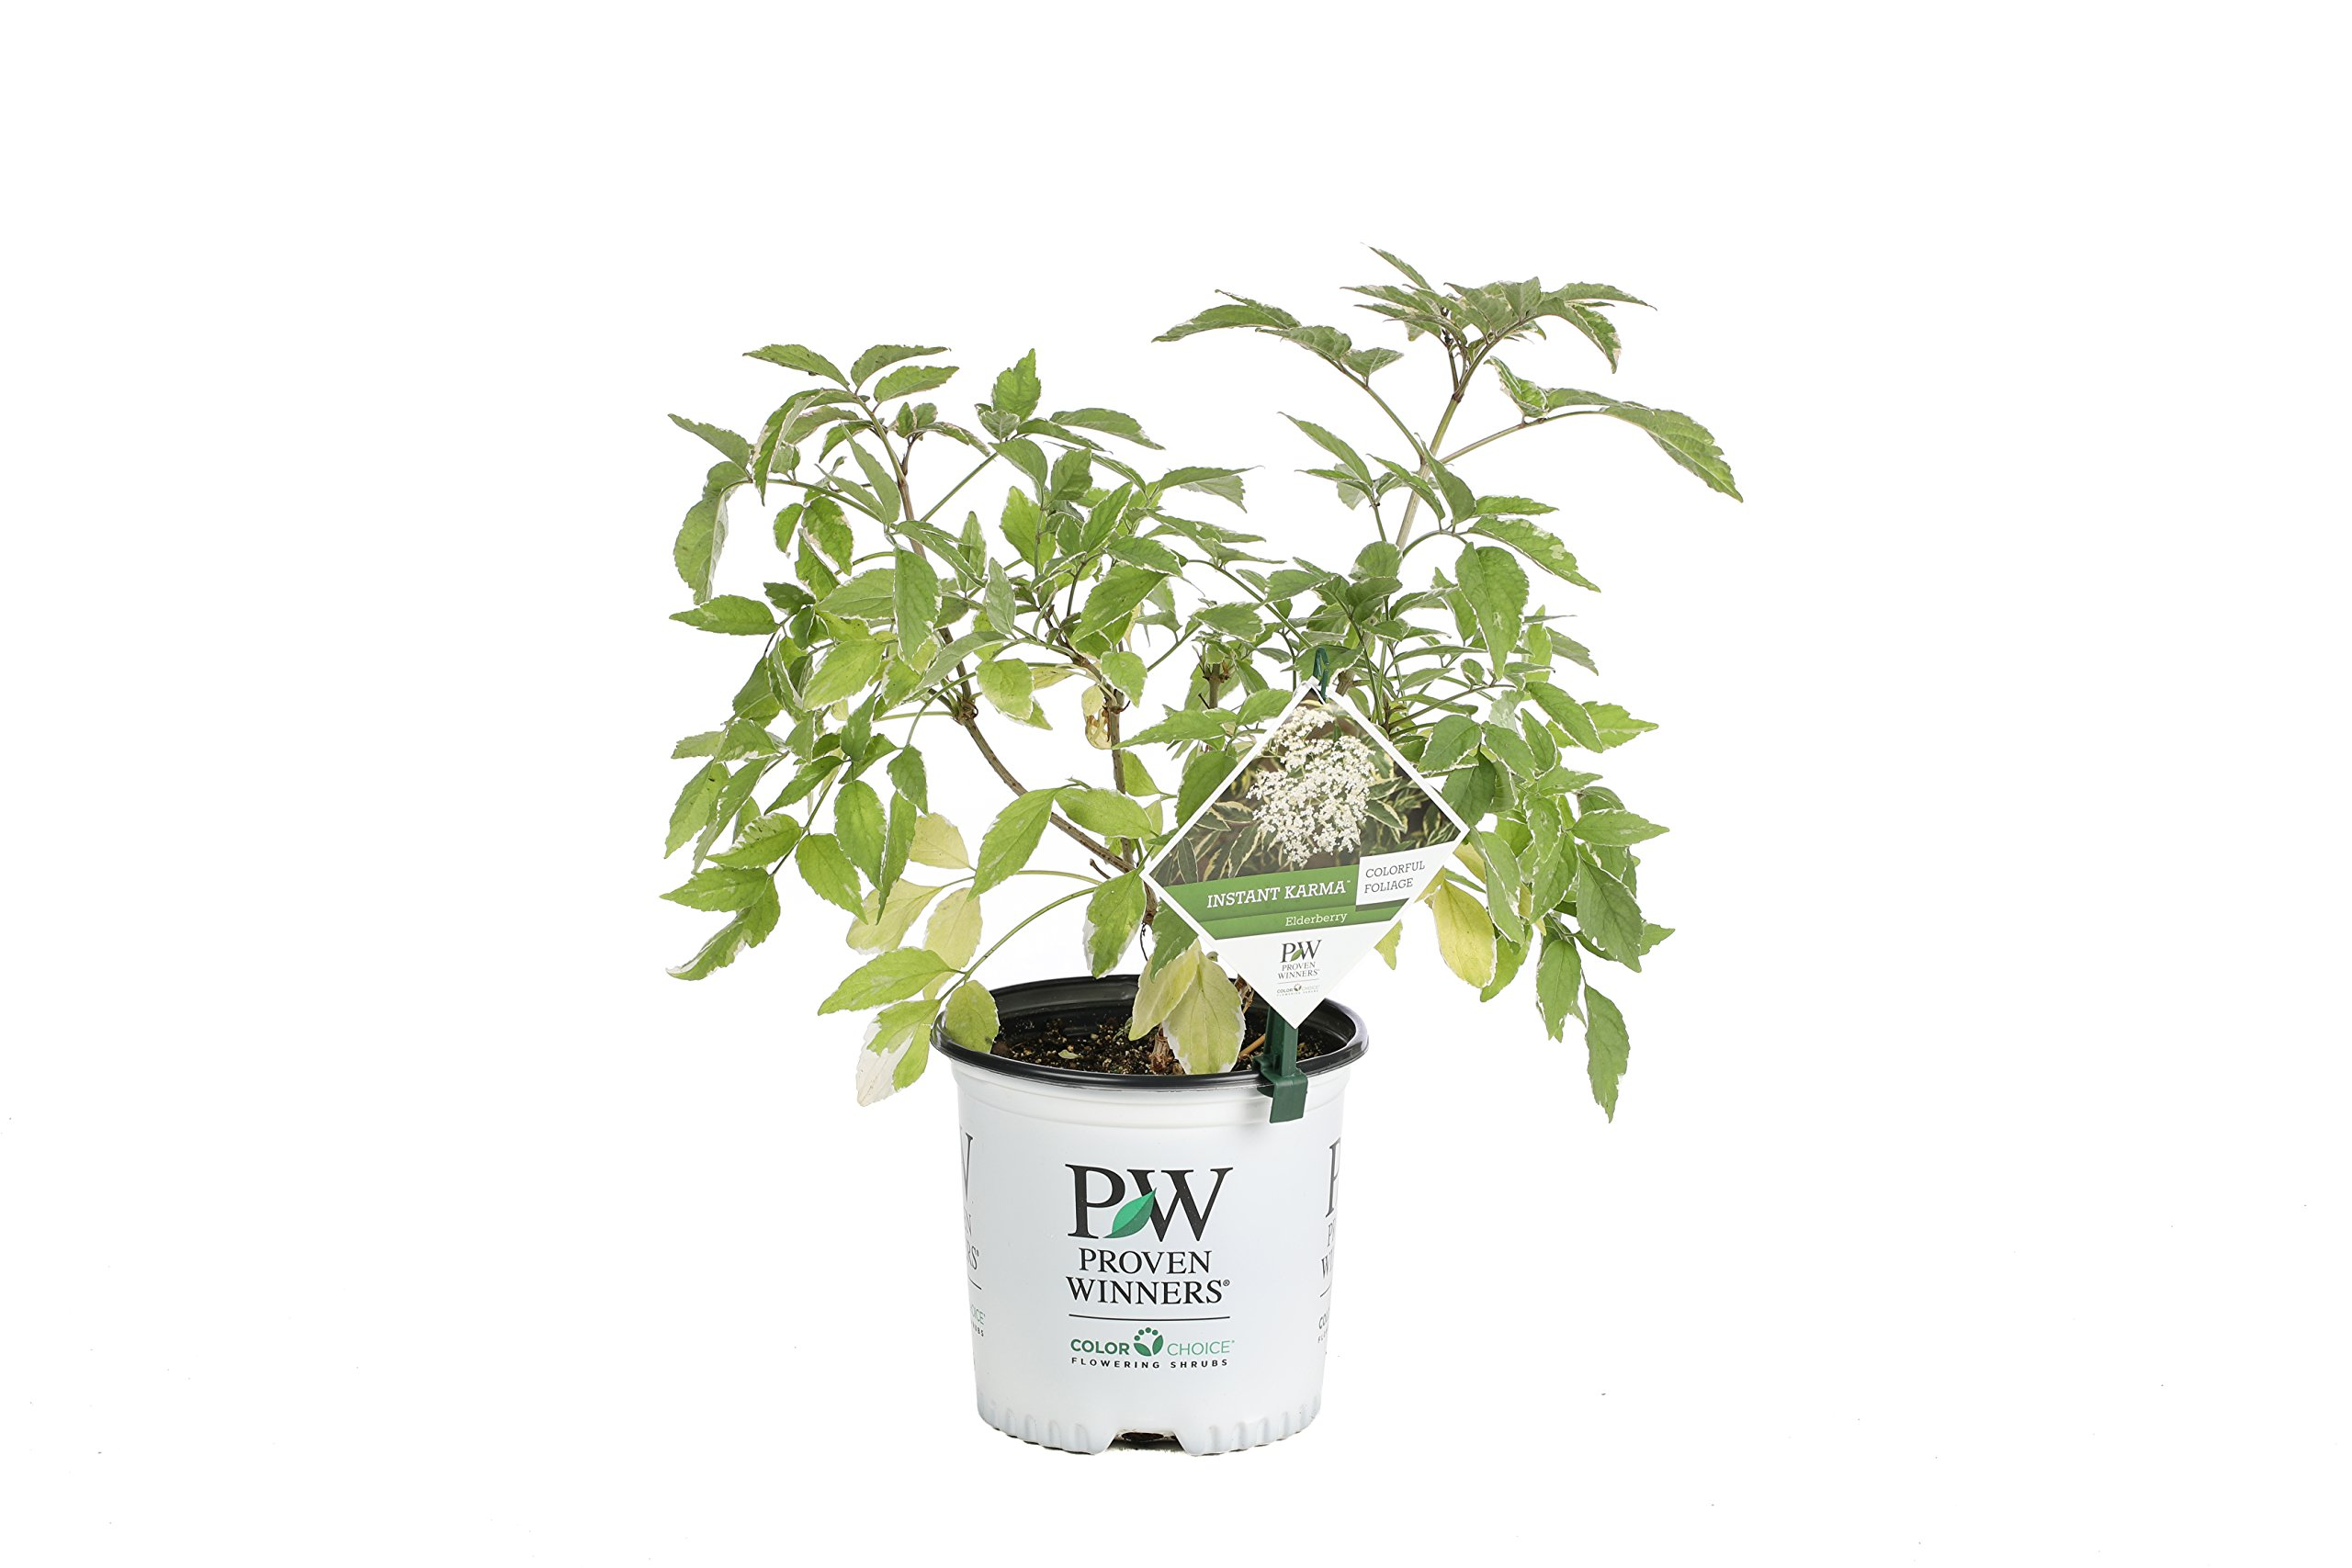 Instant Karma Elderberry (Sambucus) Live Shrub, White Flowers and Variegated Foliage, 1 Gallon by Proven Winners (Image #1)